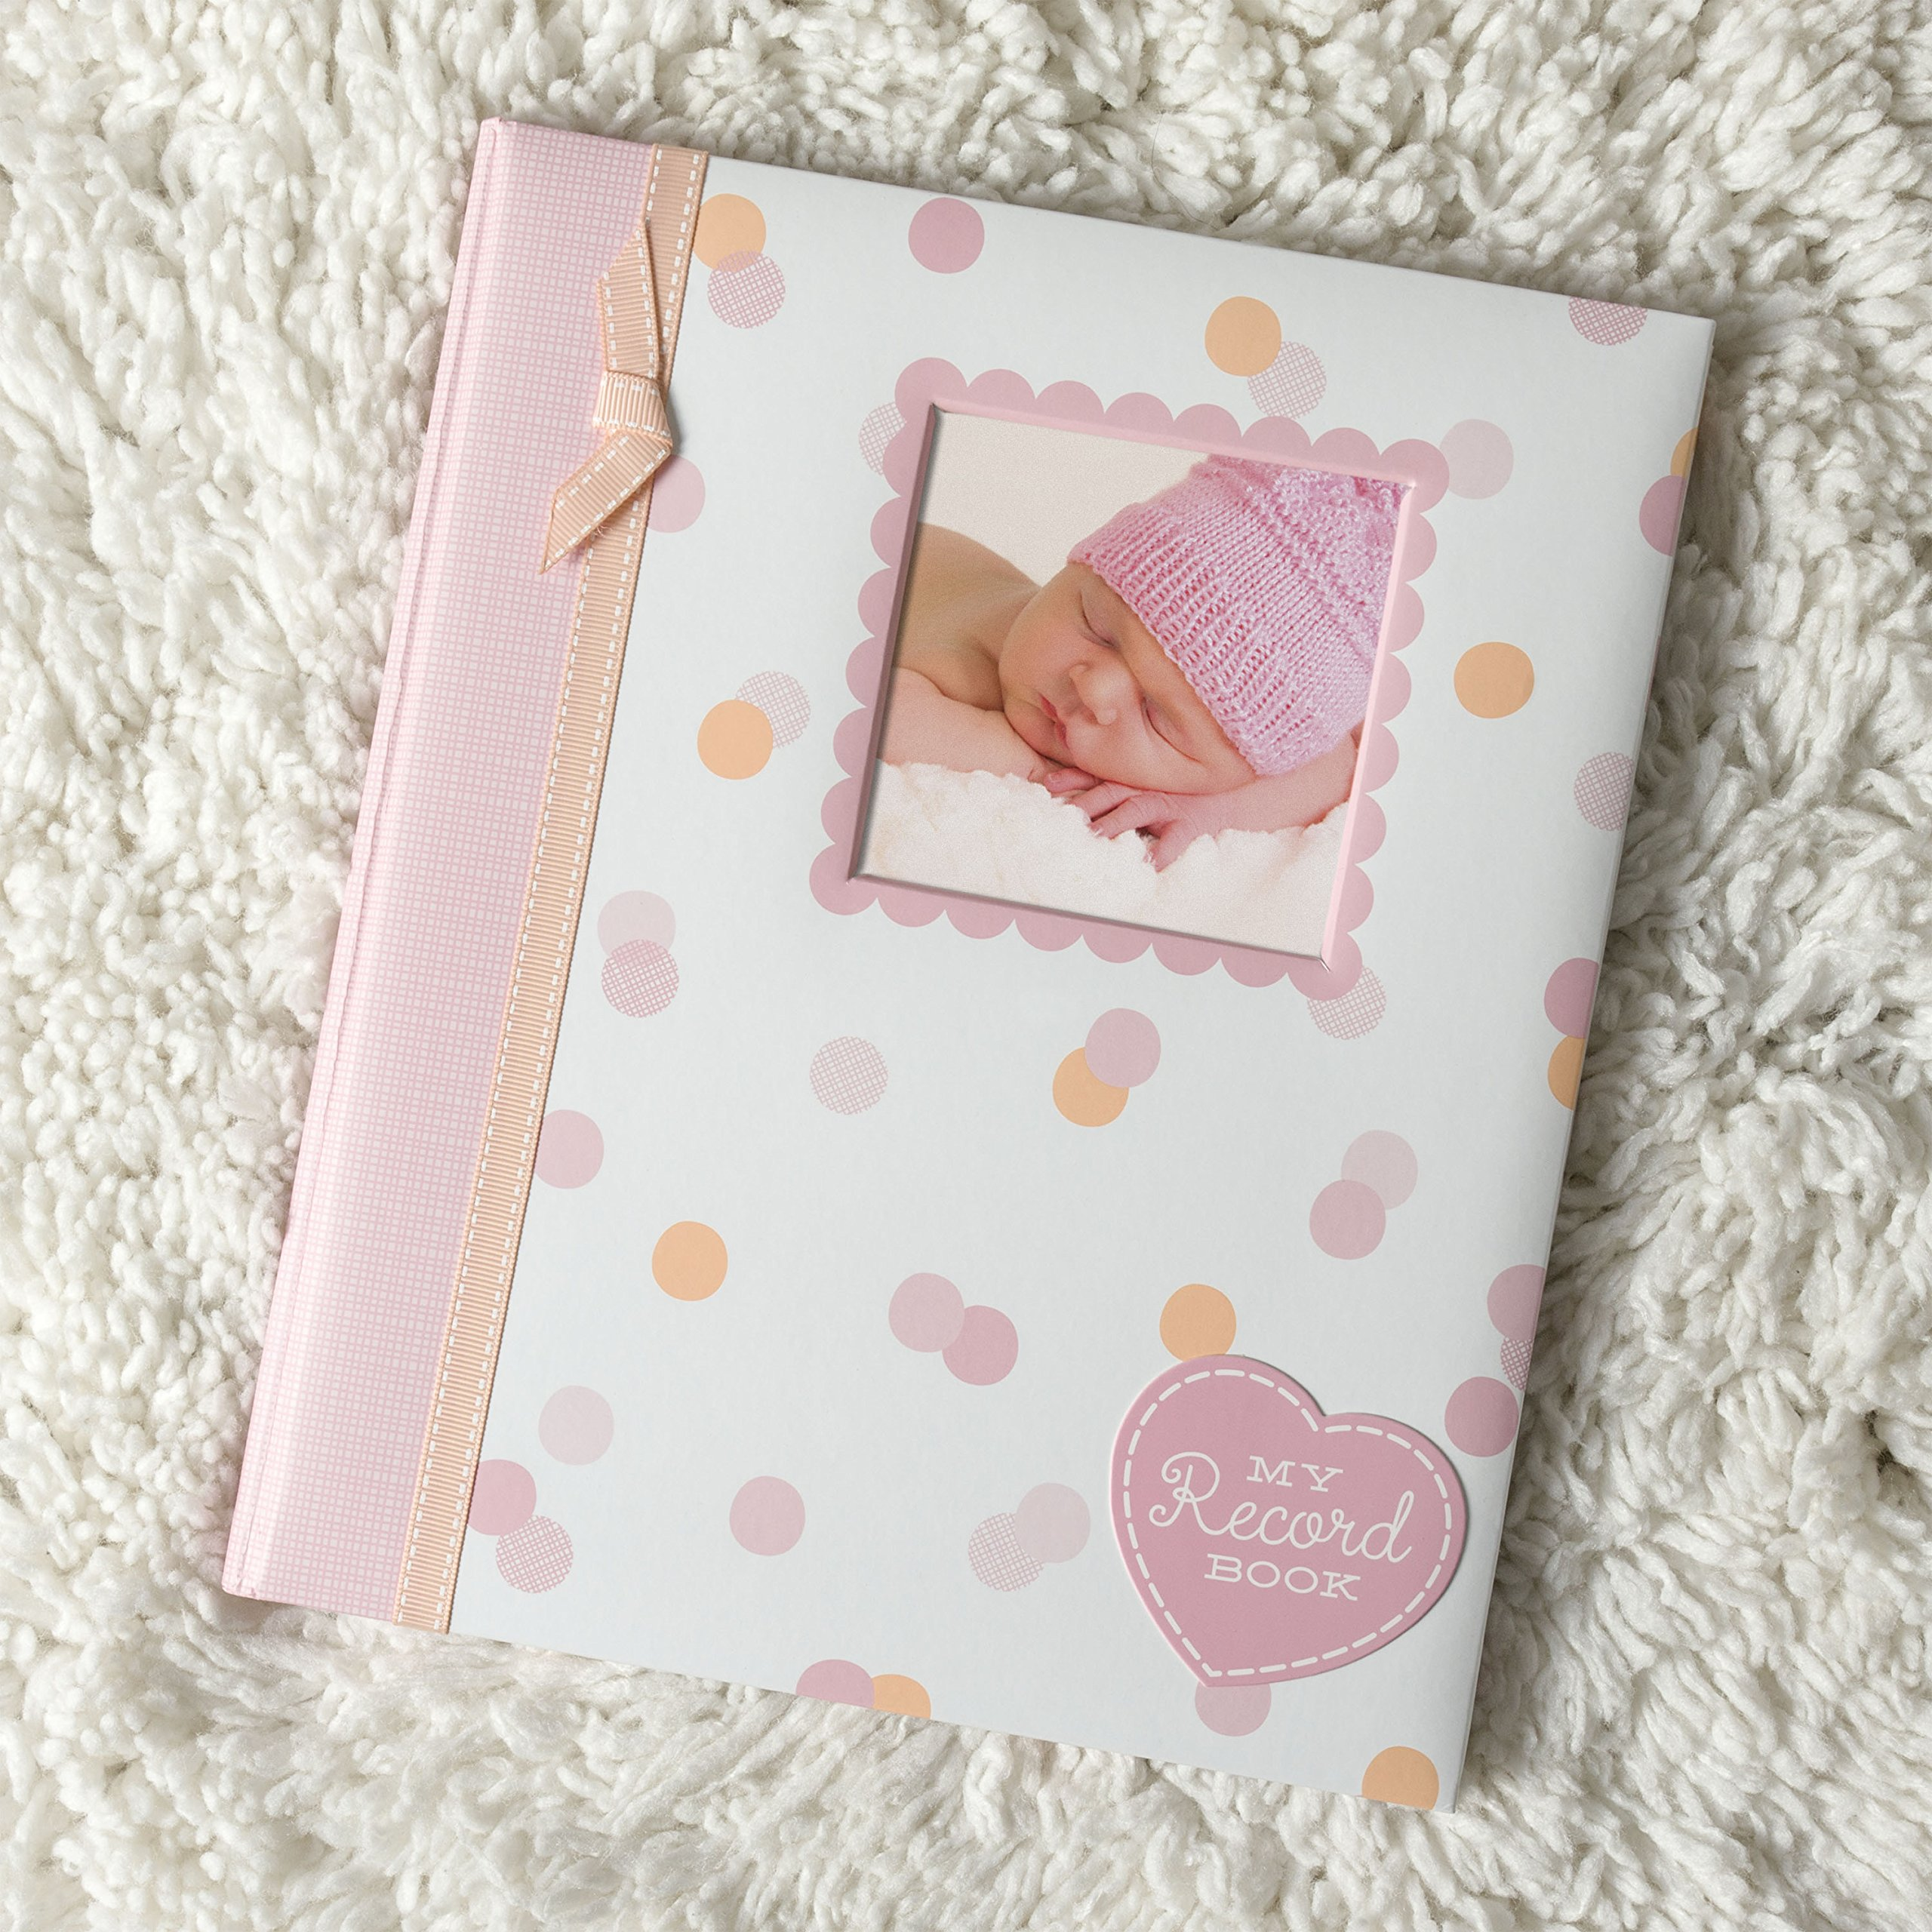 Lil Peach First 5 Years Baby Memory Book, Cherish Every Precious Moment of Your Baby, Perfect Baby Shower Gift, Pink and Peach Confetti Polka Dots by Lil Peach (Image #2)